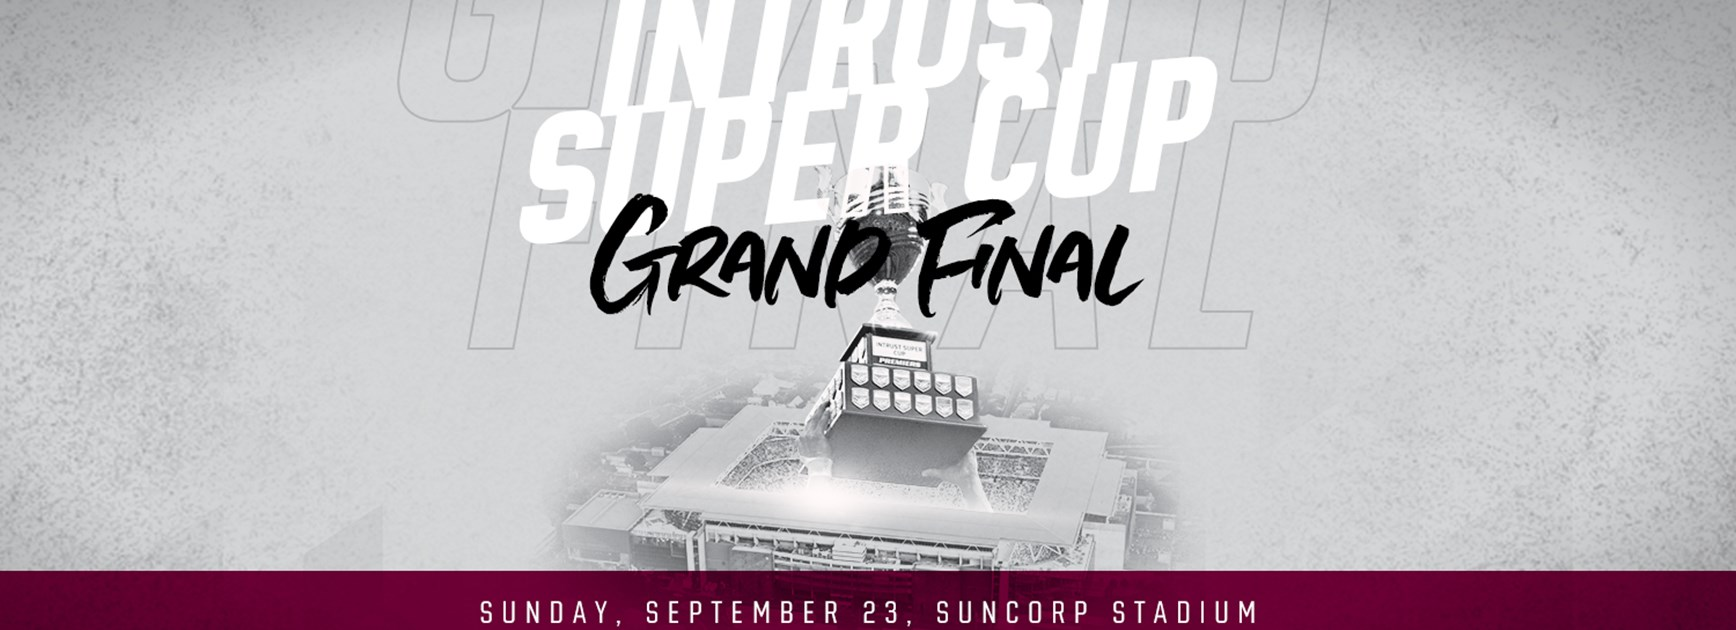 Grand final tickets on sale!